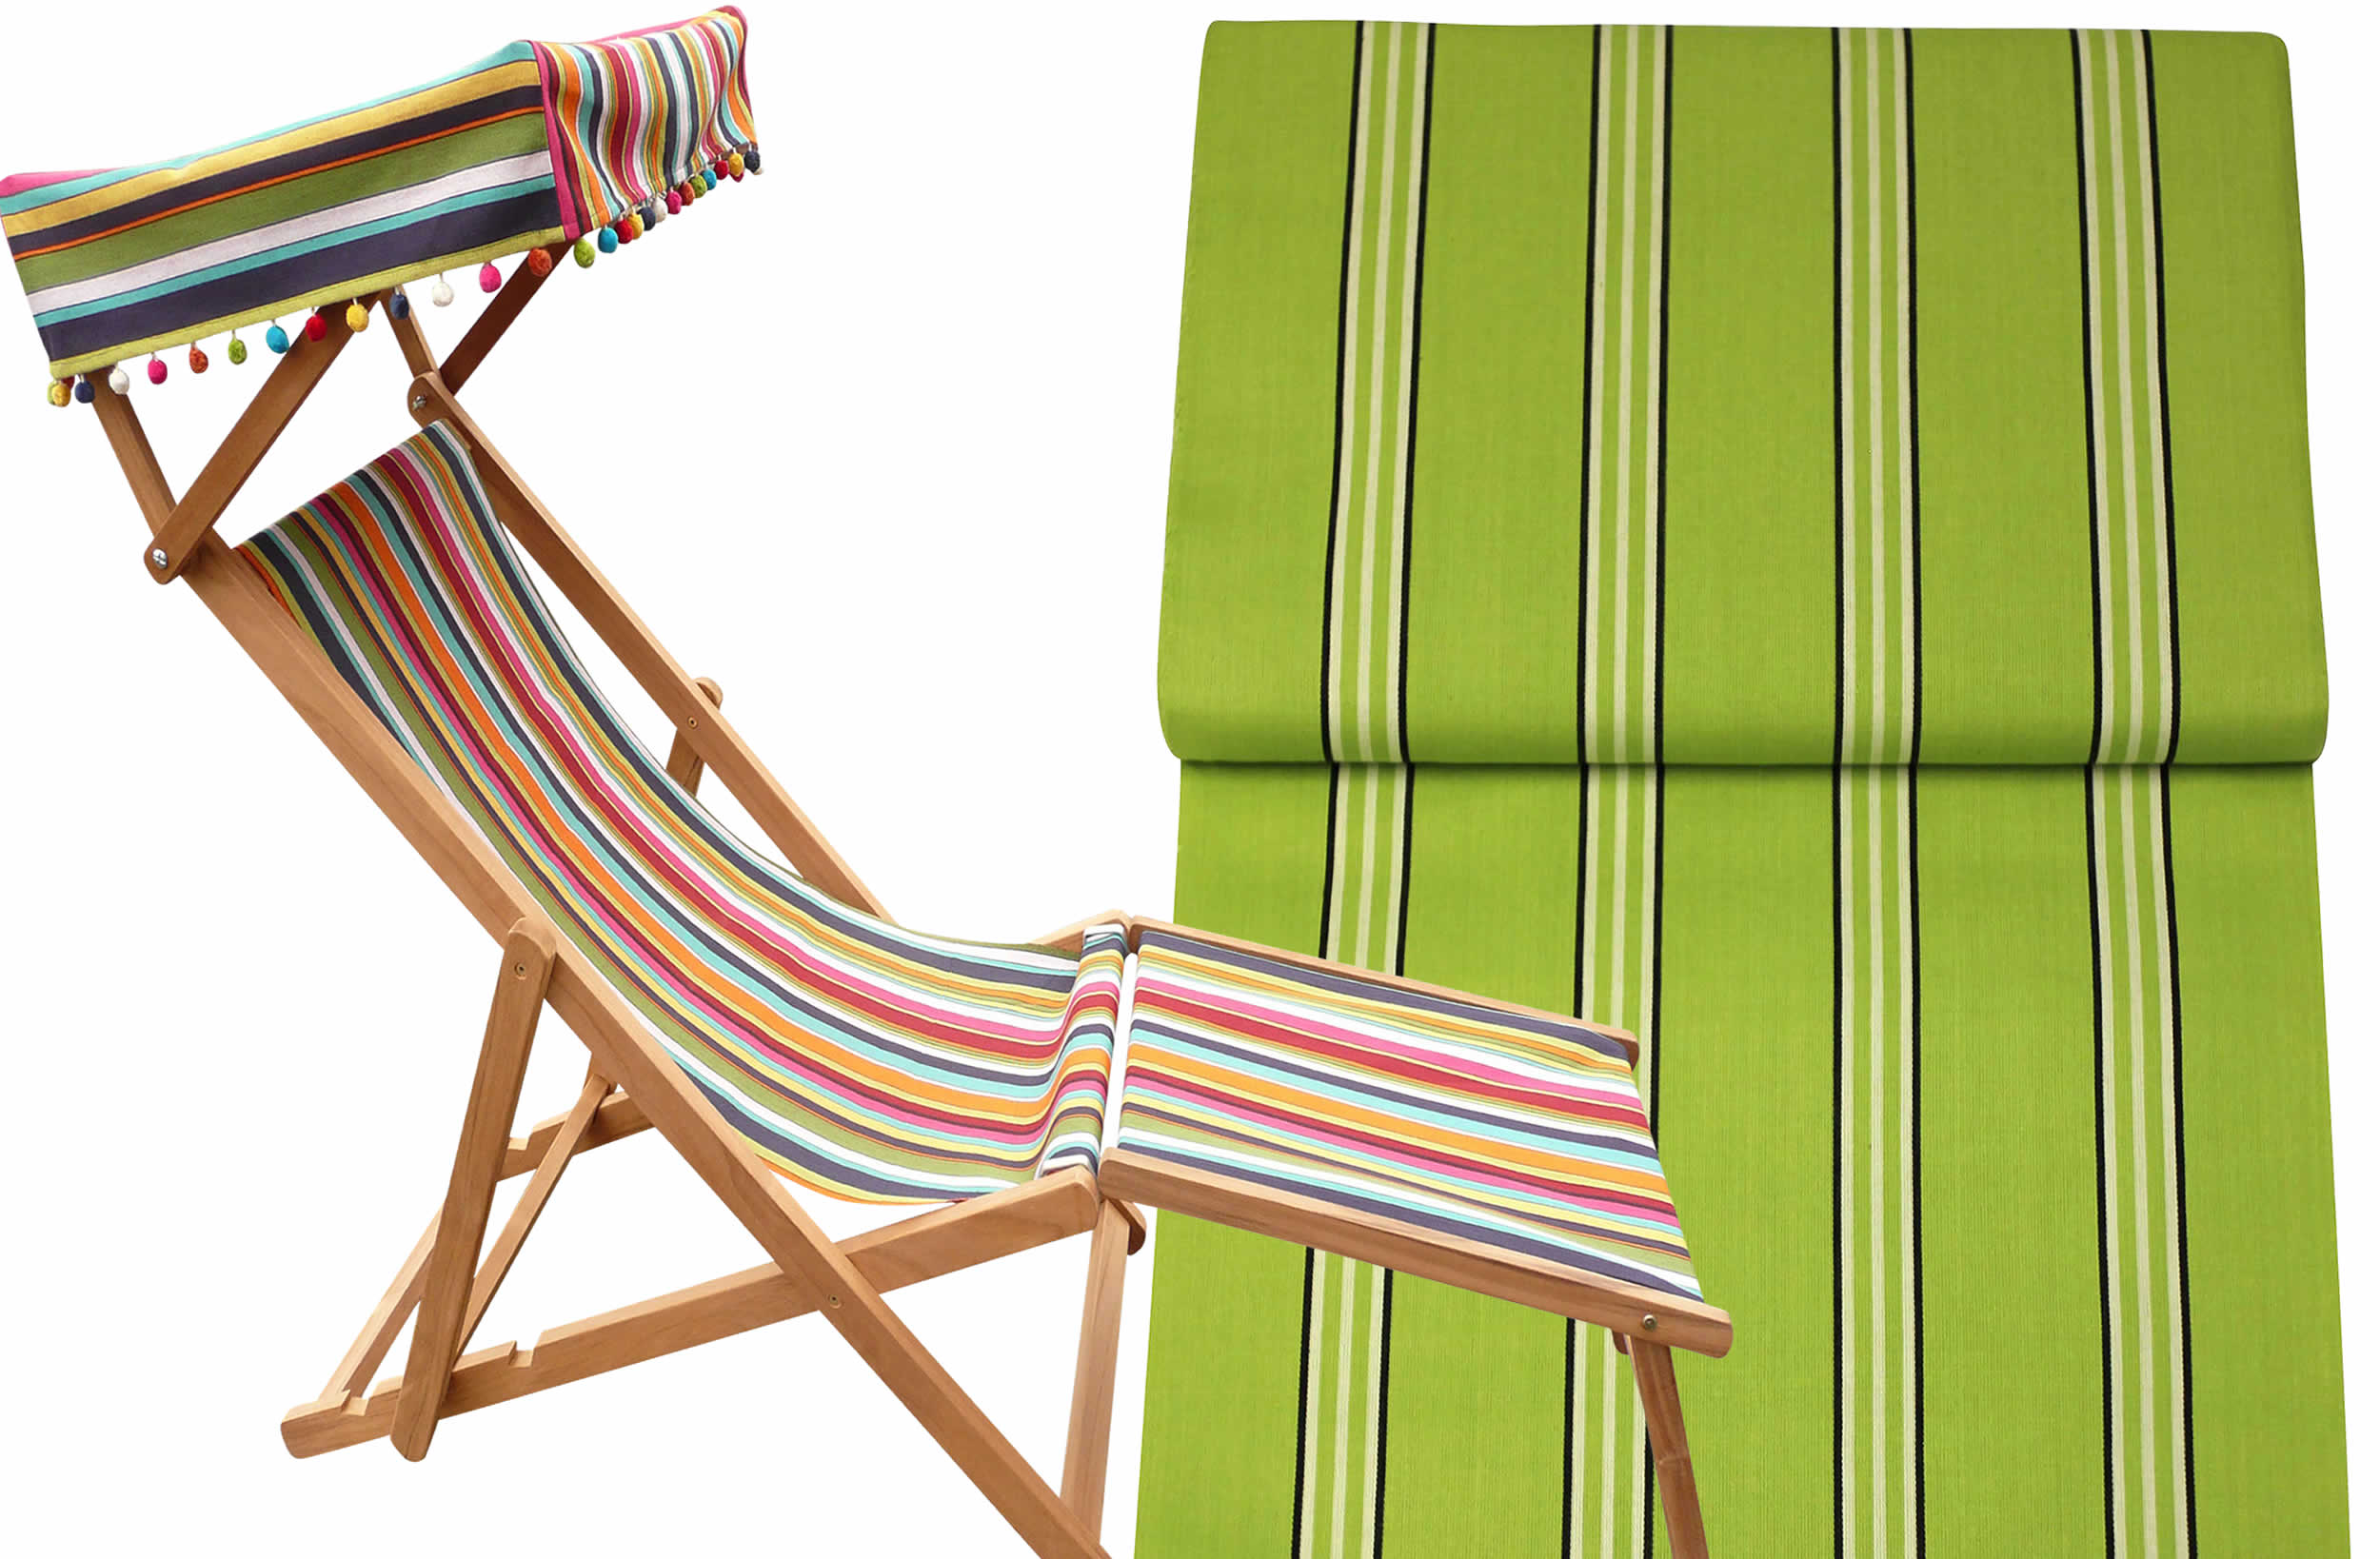 Edwardian Deckchairs with Canopy and Footstool lime, white, black